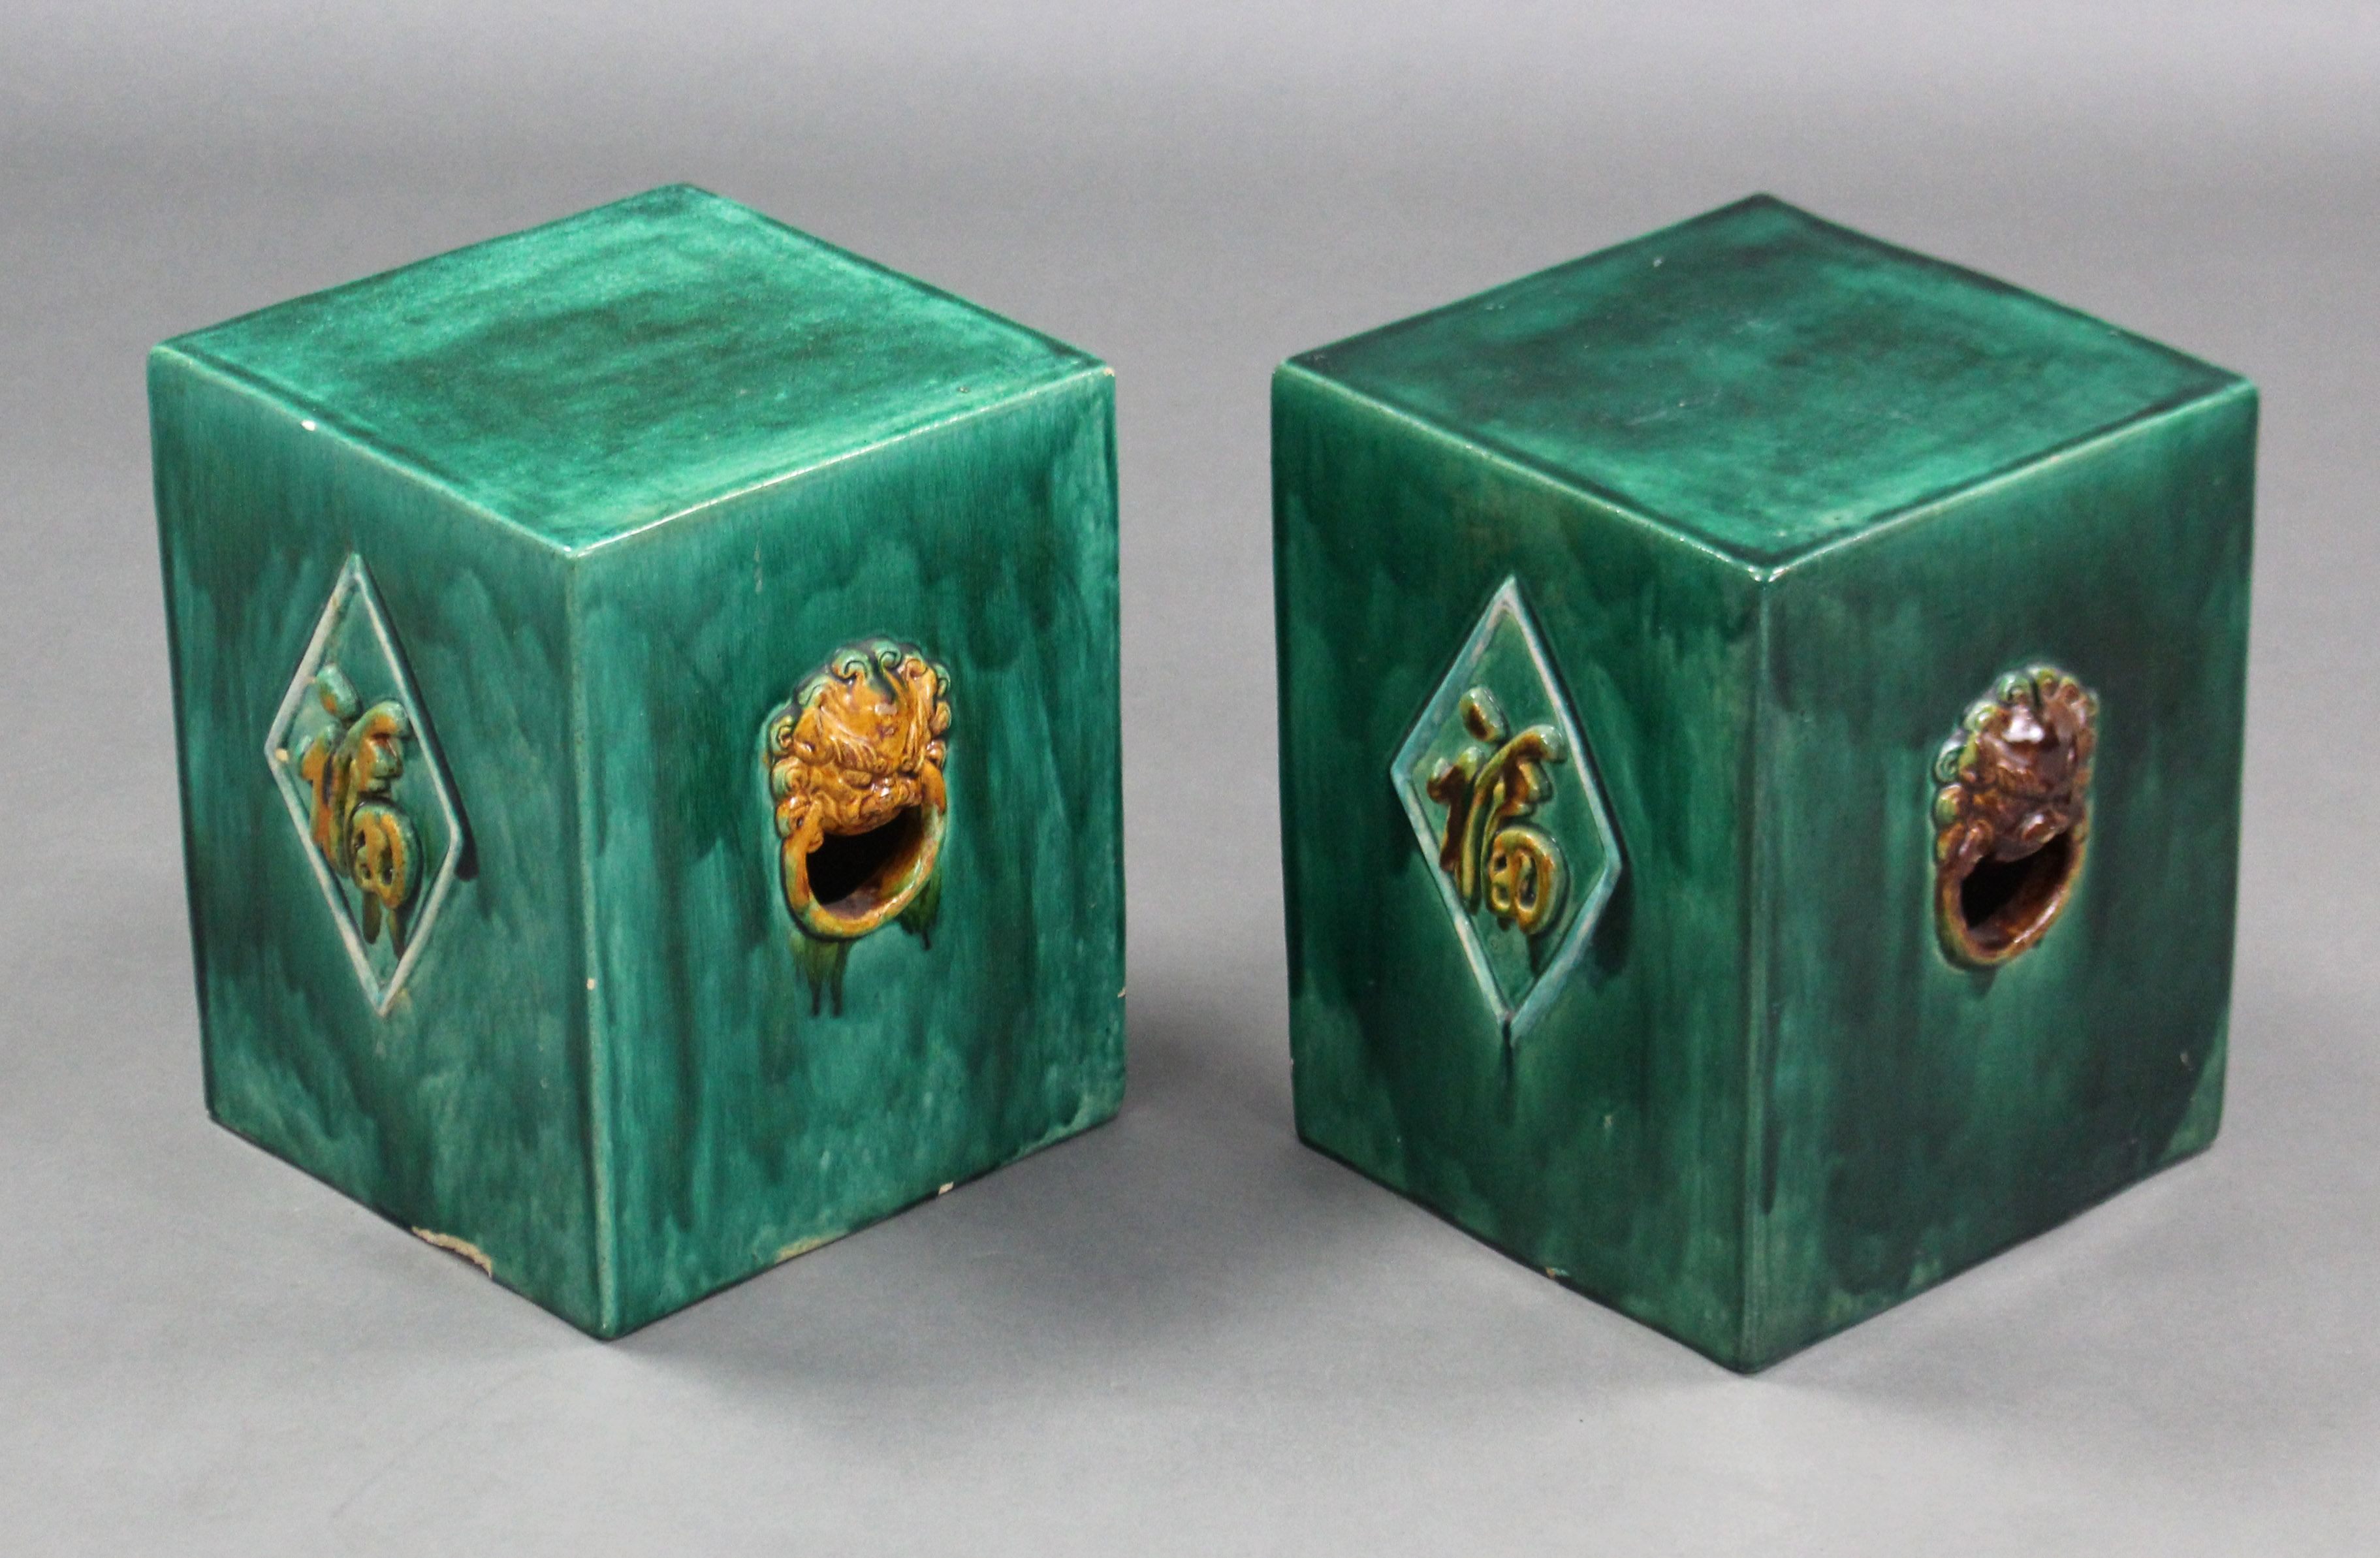 Lot 192 - A pair of green glazed Chinese pottery conservatory seats of rectangular form, with raised